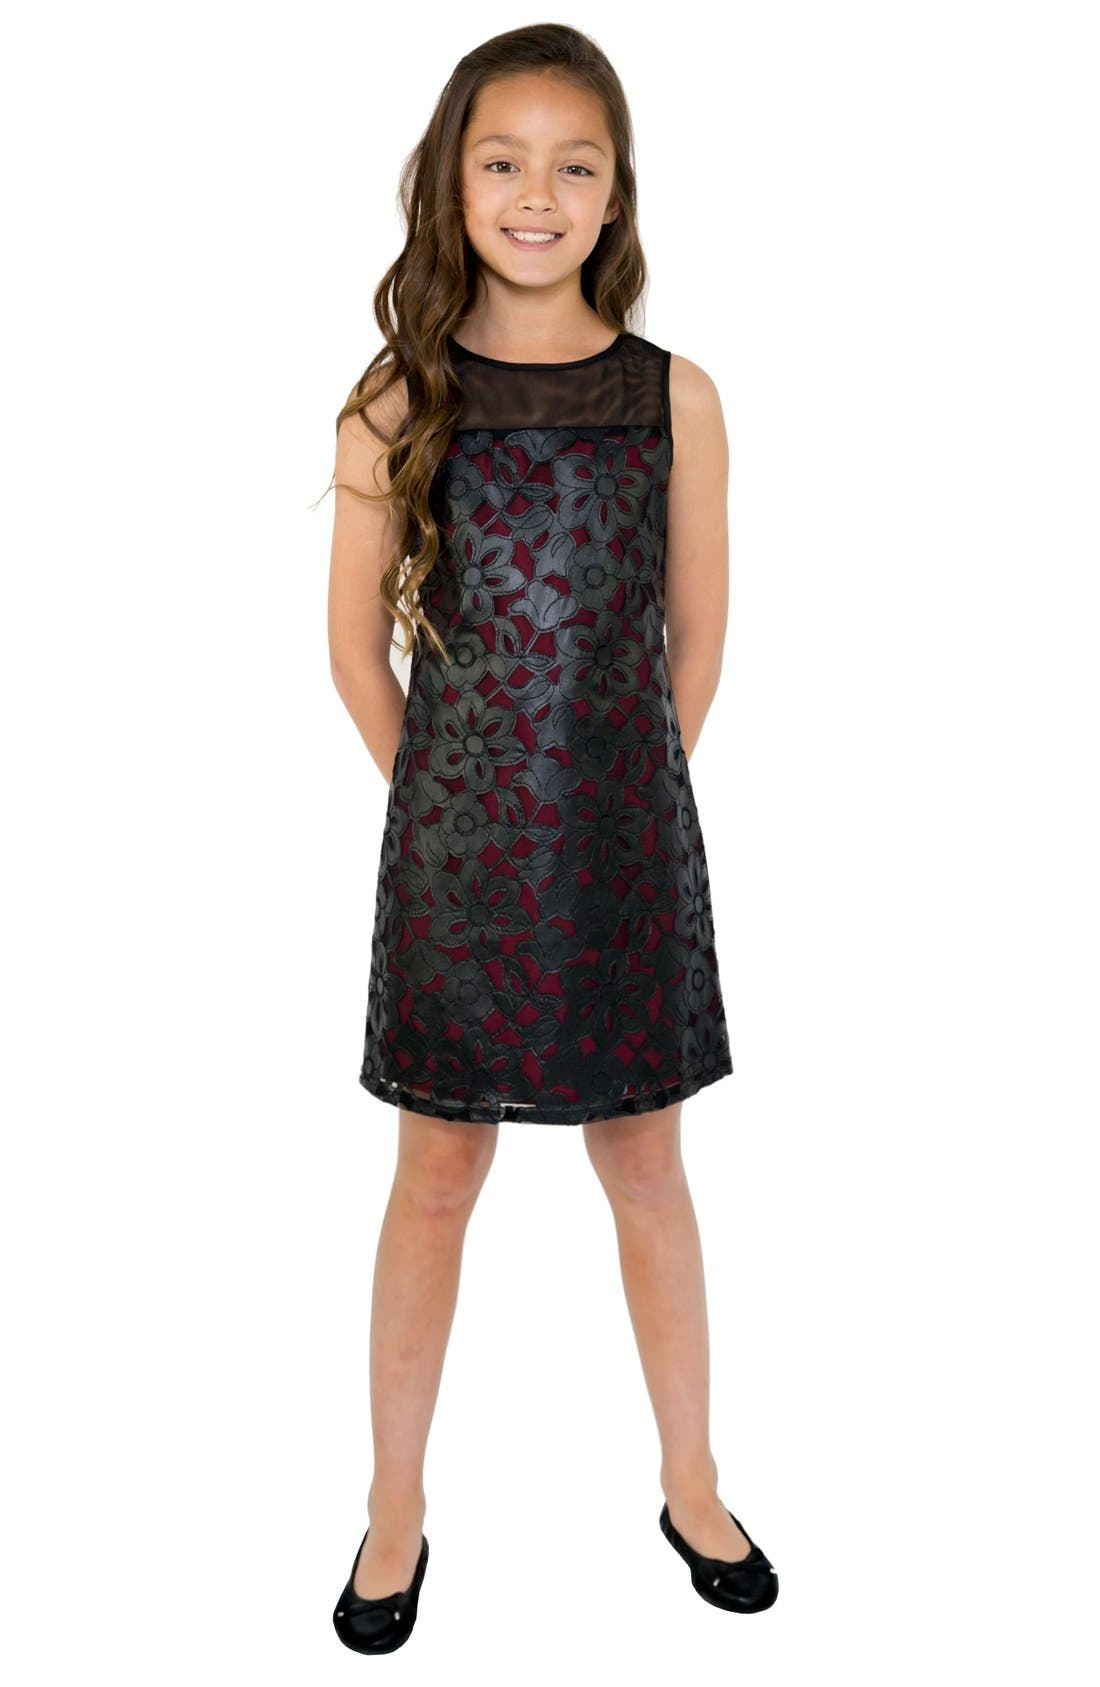 Alternate Image 1 Selected - BLUSH by Us Angels Faux Leather Sheath Dress (Big Girls)